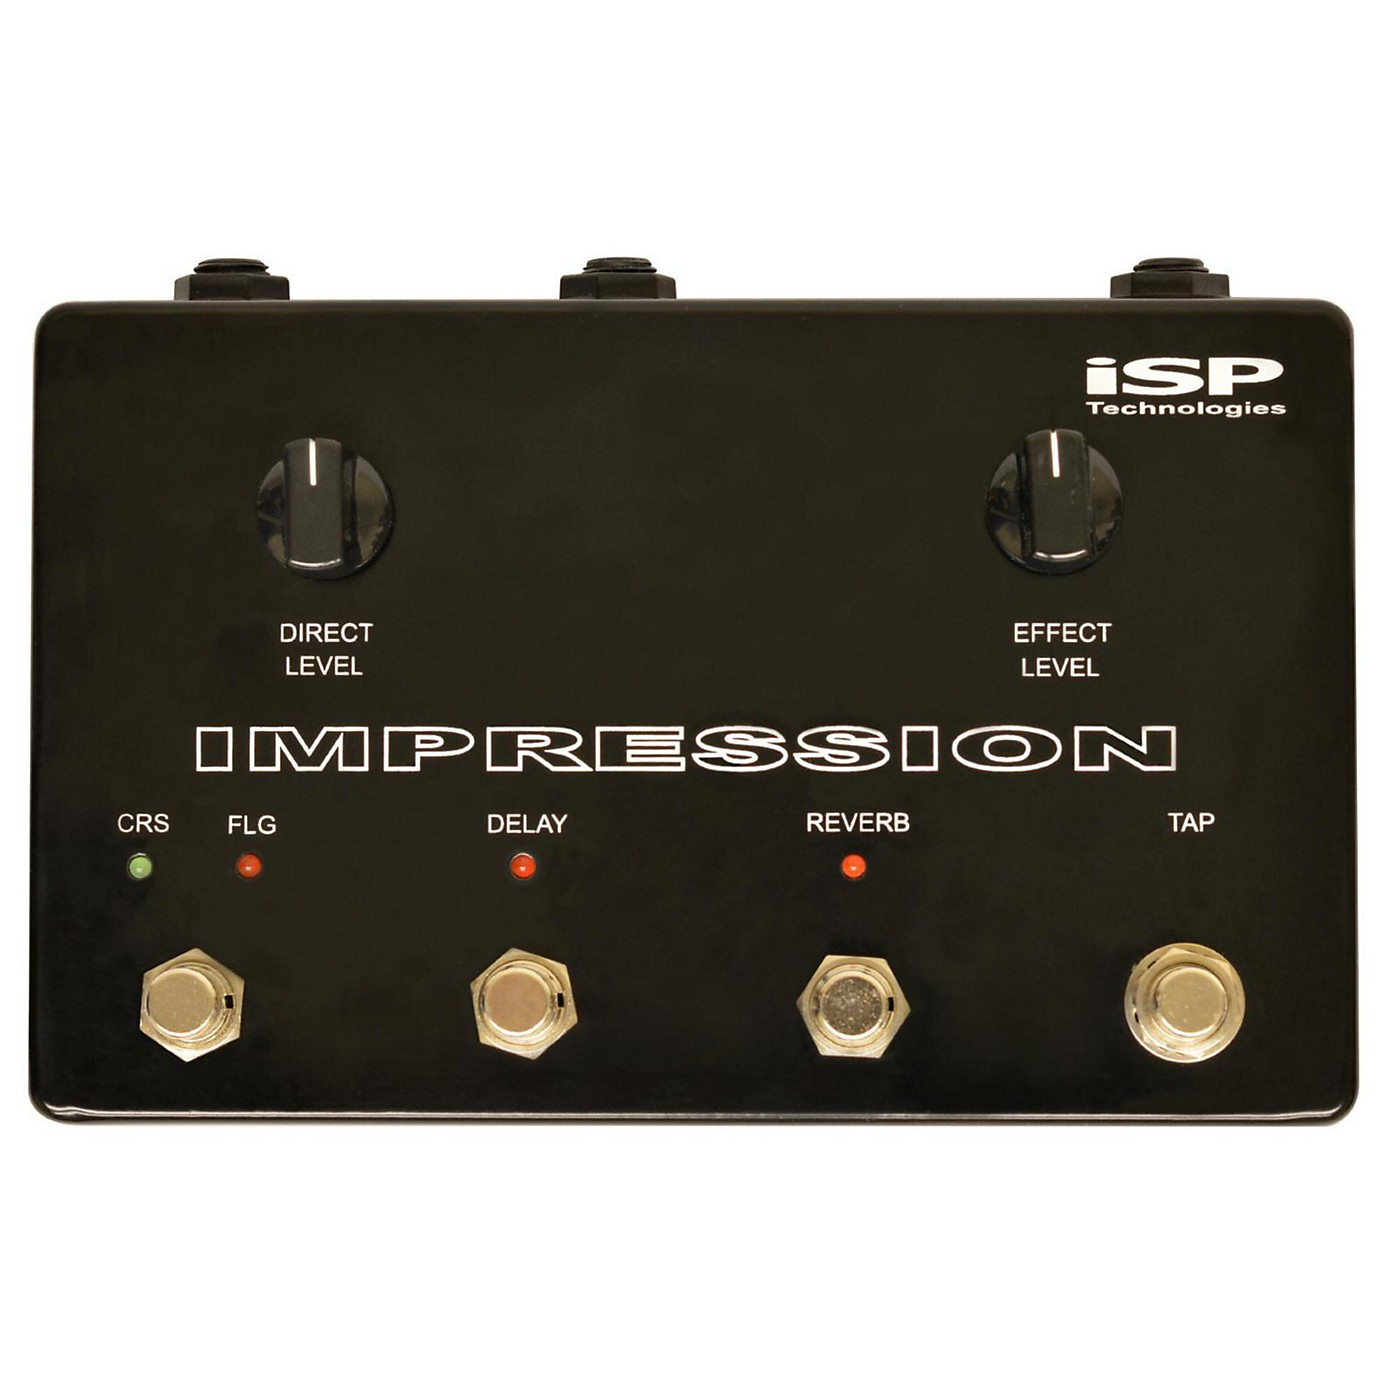 Isp Technologies Impression Multi-Effect Guitar Effects Pedal thumbnail